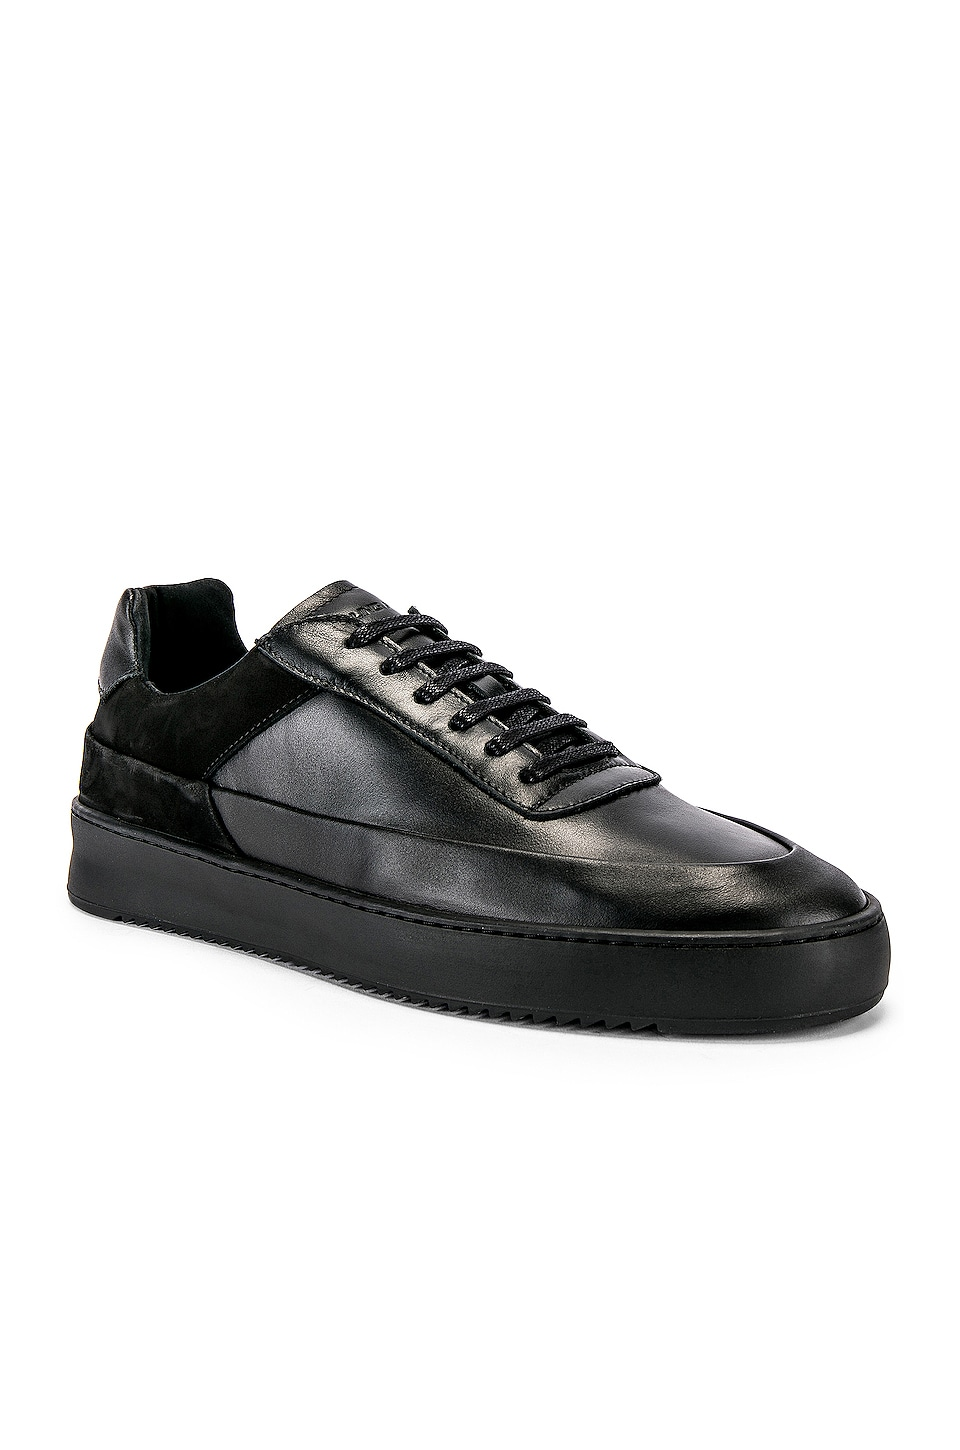 Filling Pieces Shift Sneaker in All Black